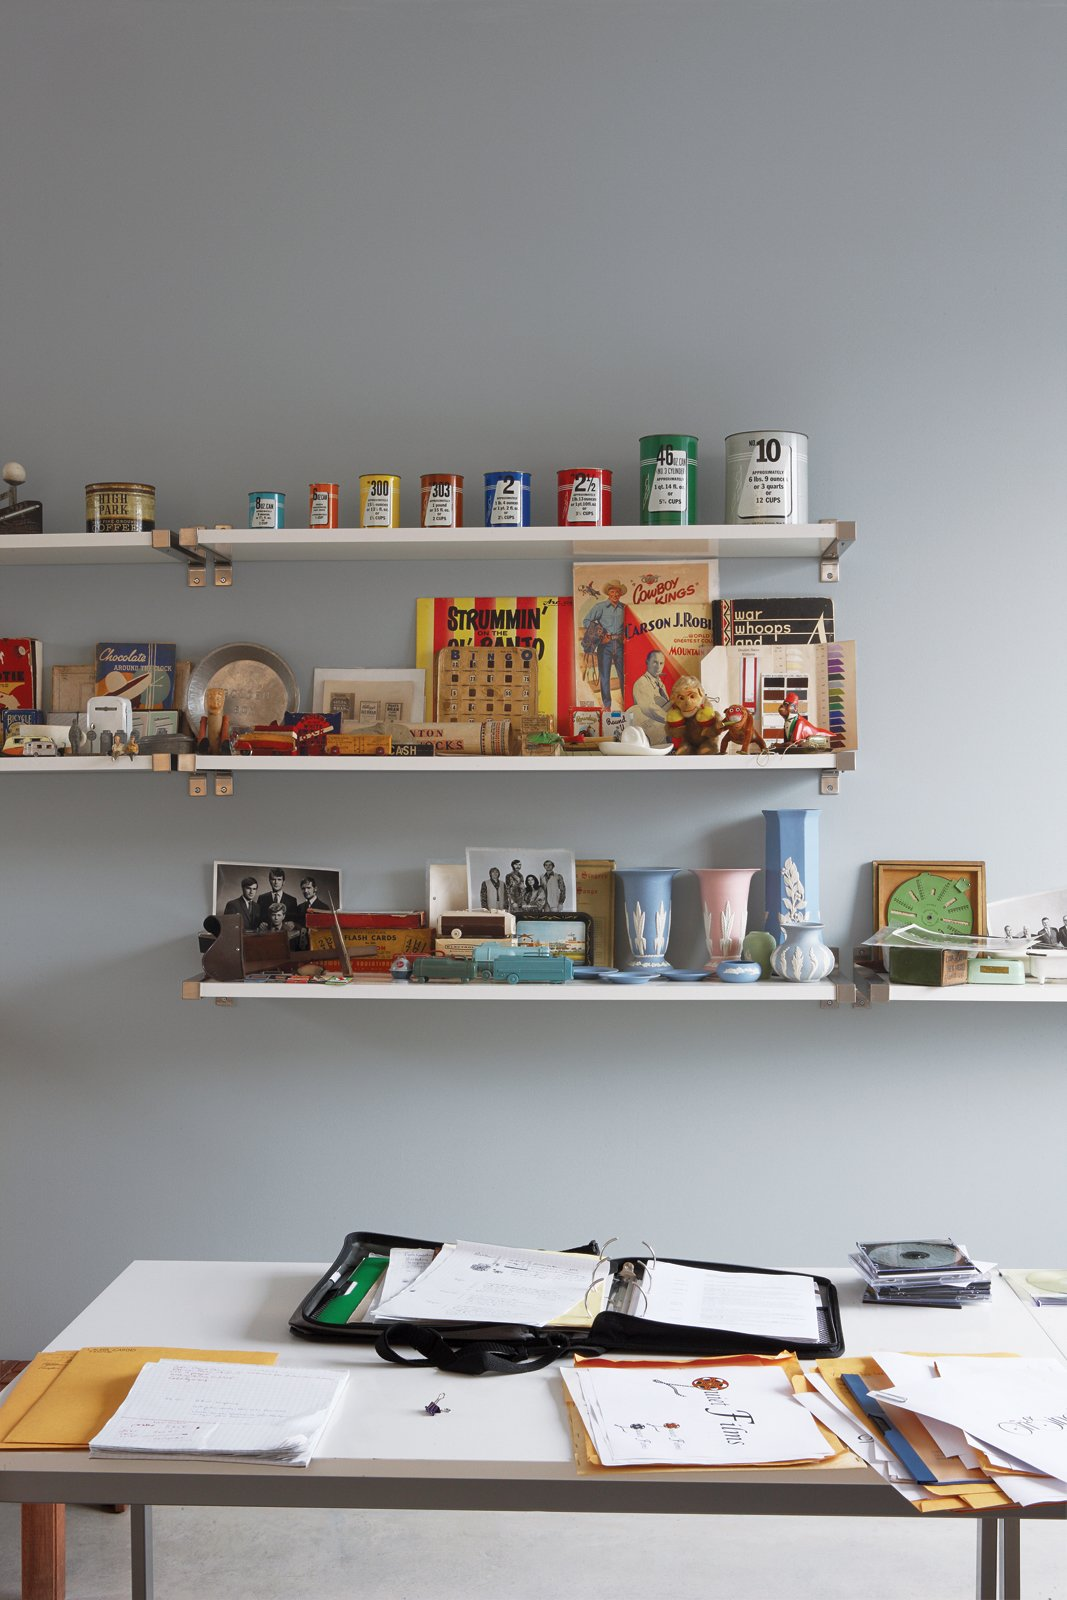 In the upstairs studio Adams draws inspiration from collections of salesmen's sample cans, Canadian early-20th-century ceramics, and Electrolux vacuum-cleaner piggy banks. From Brown to Green - Photo 5 of 8